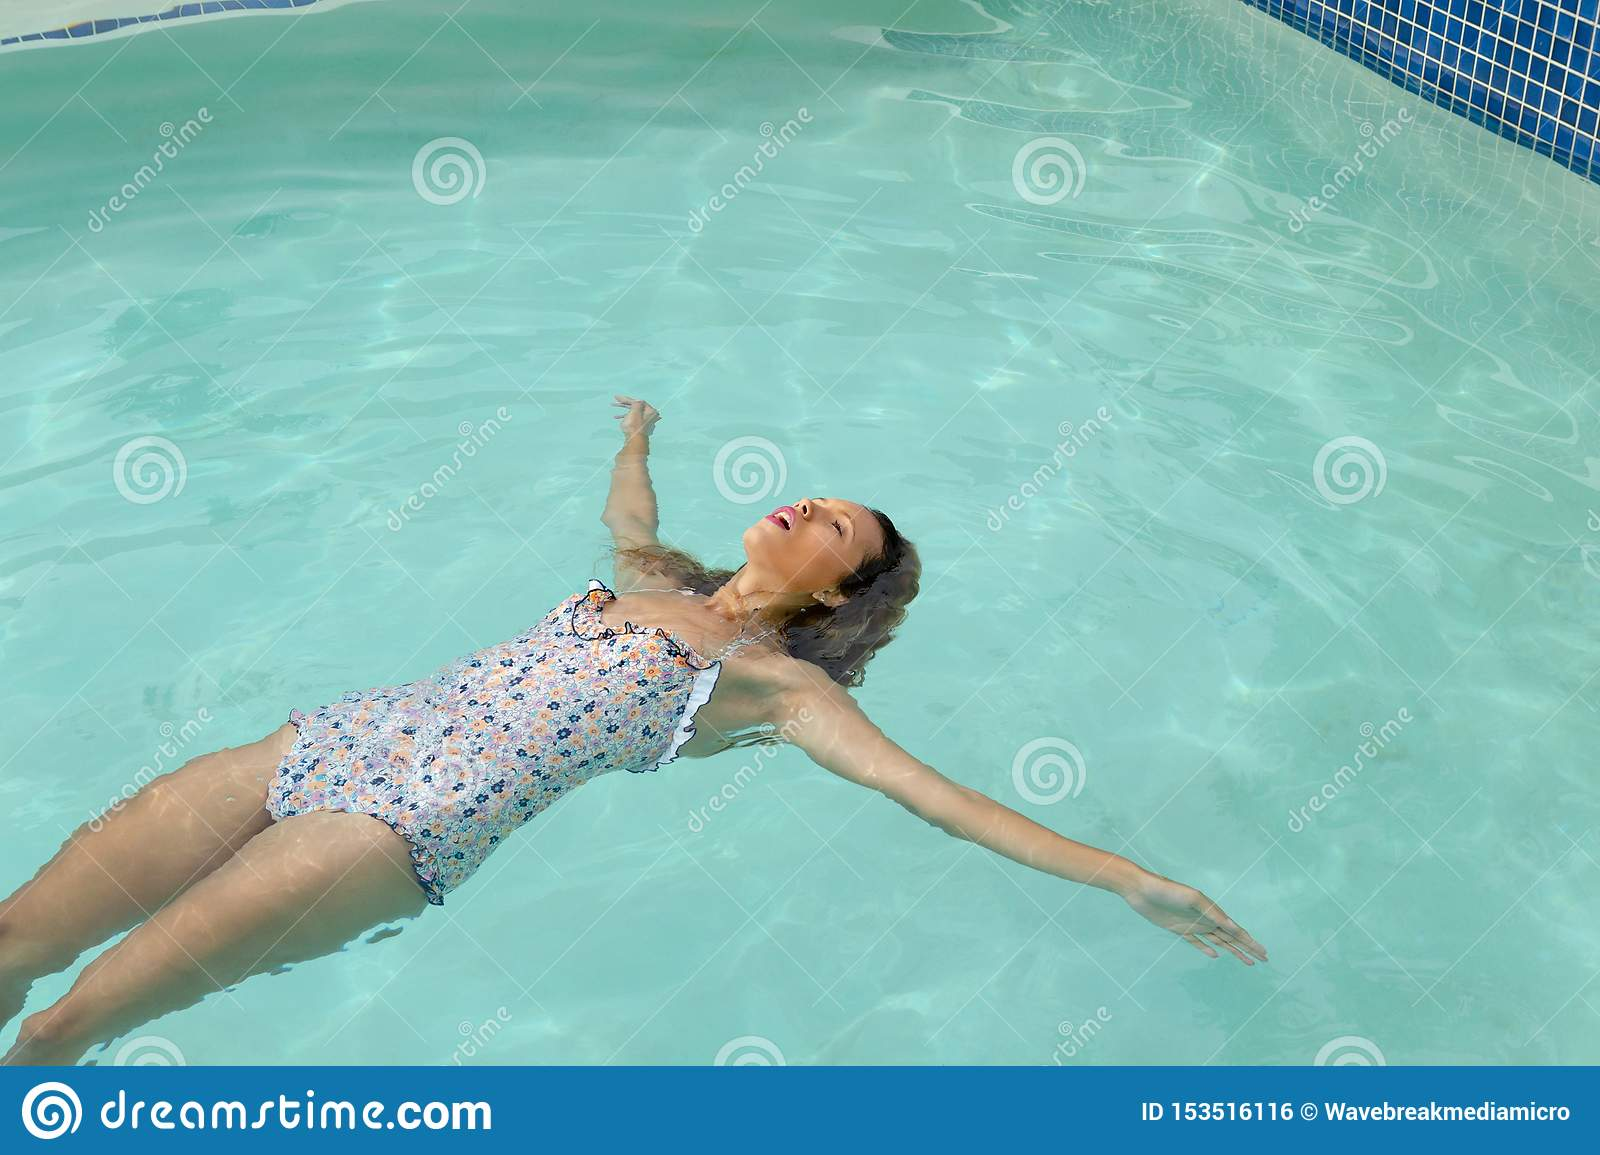 Woman With Eyes Closed Floating In Swimming Pool At The Backyard Of Home Stock Photo Image Of Carefree Outdoors 153516116